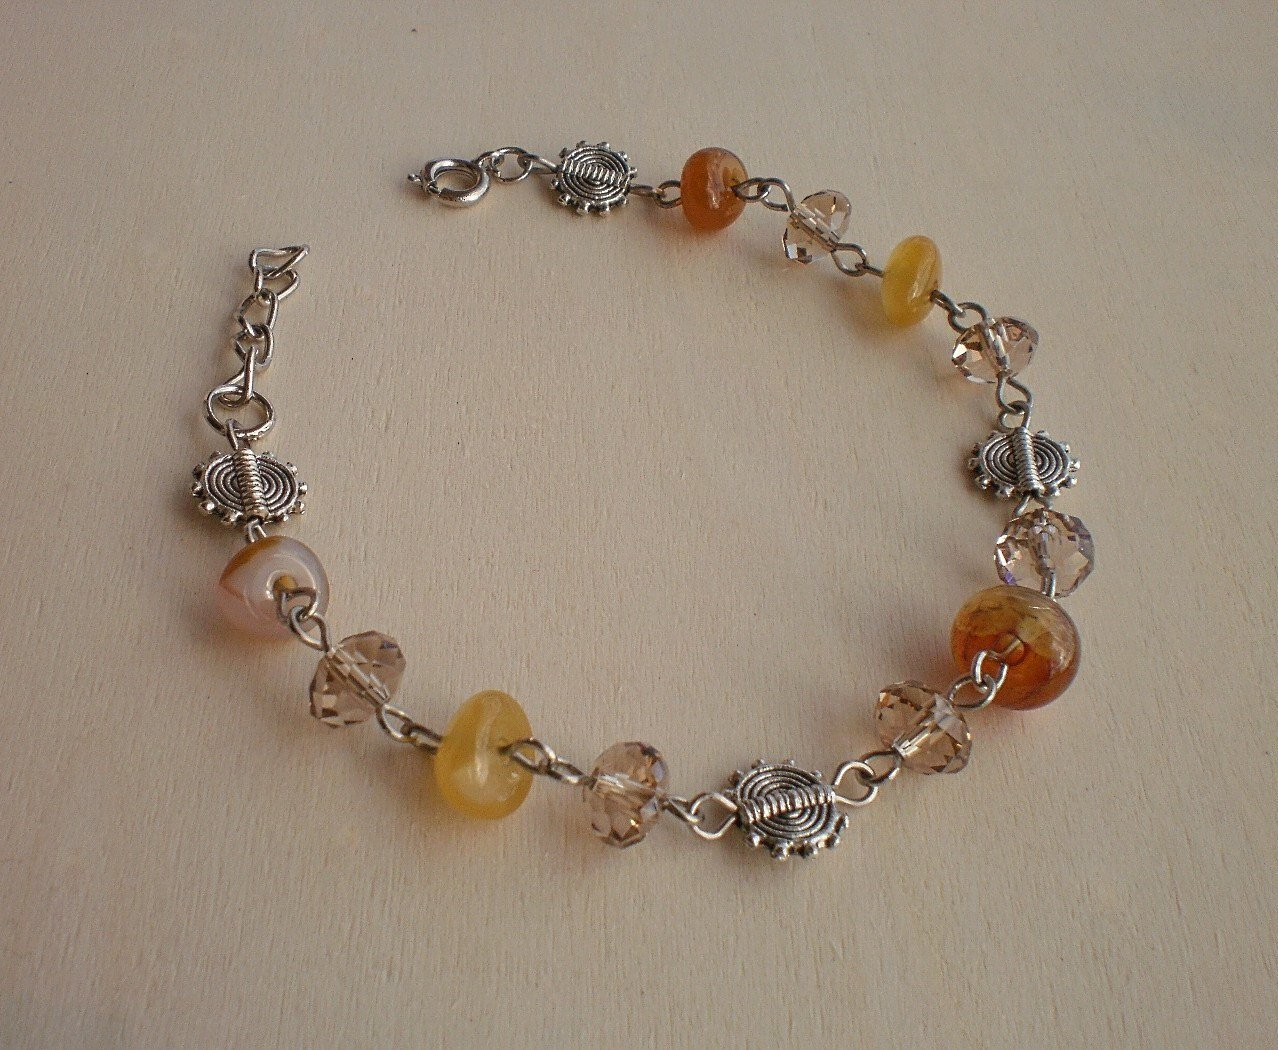 Agate Stone Beads/ Smoky Brown Crystal Semi precious Beaded Link Bracelet Handcrafted Jewelry